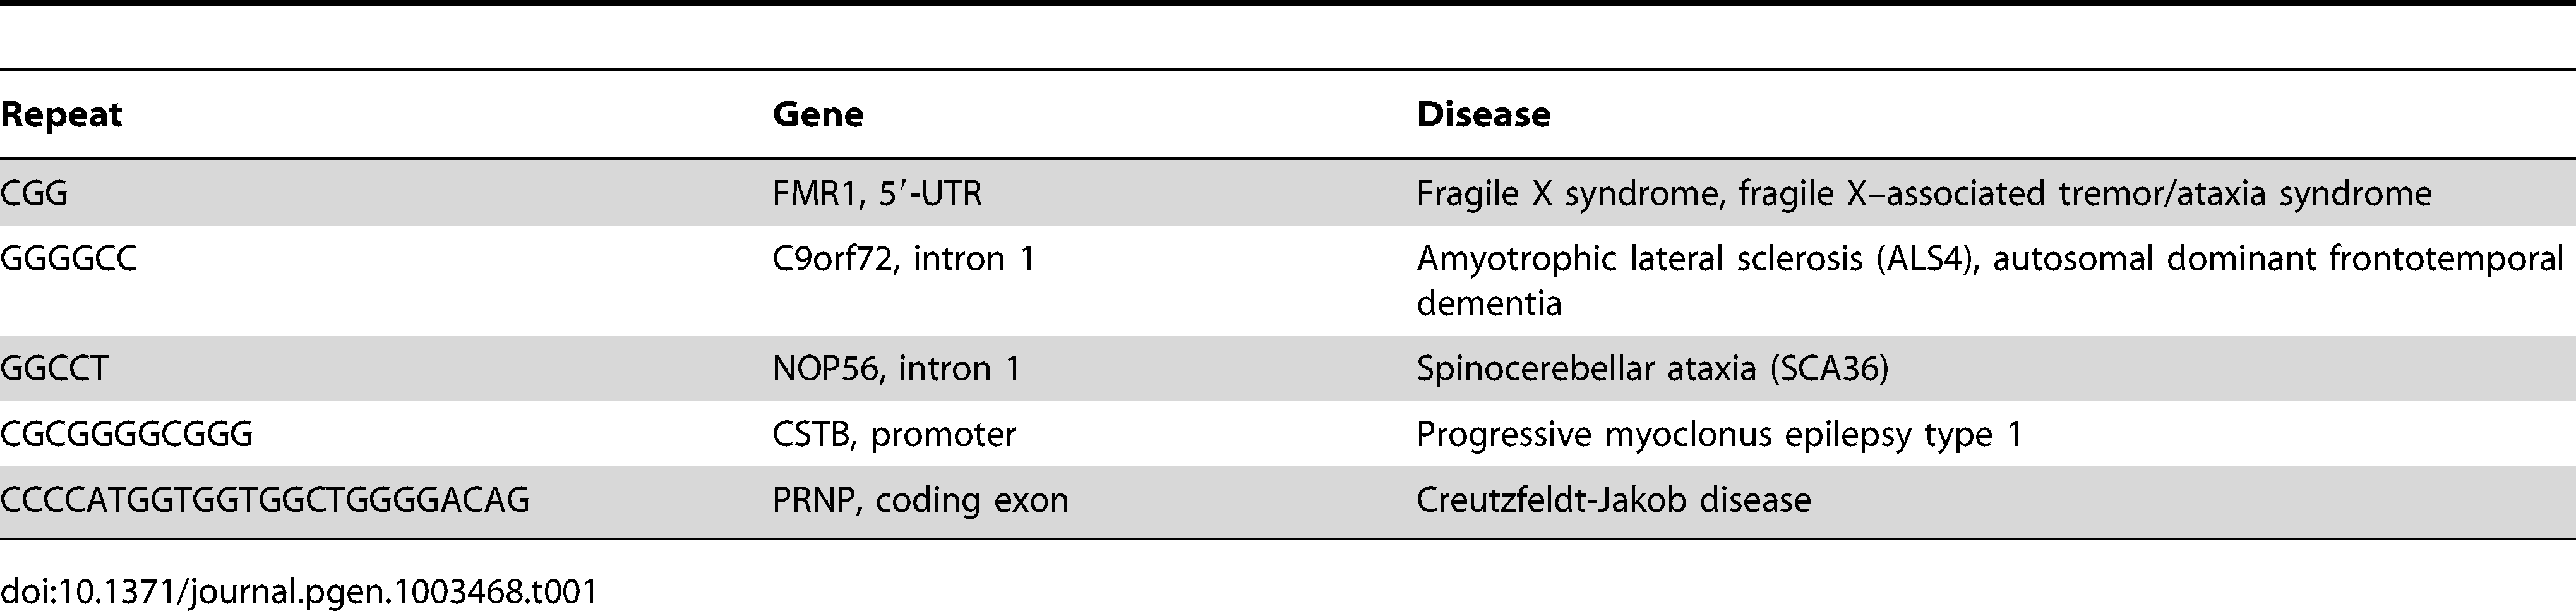 G4 motif expansions in neurological disease.